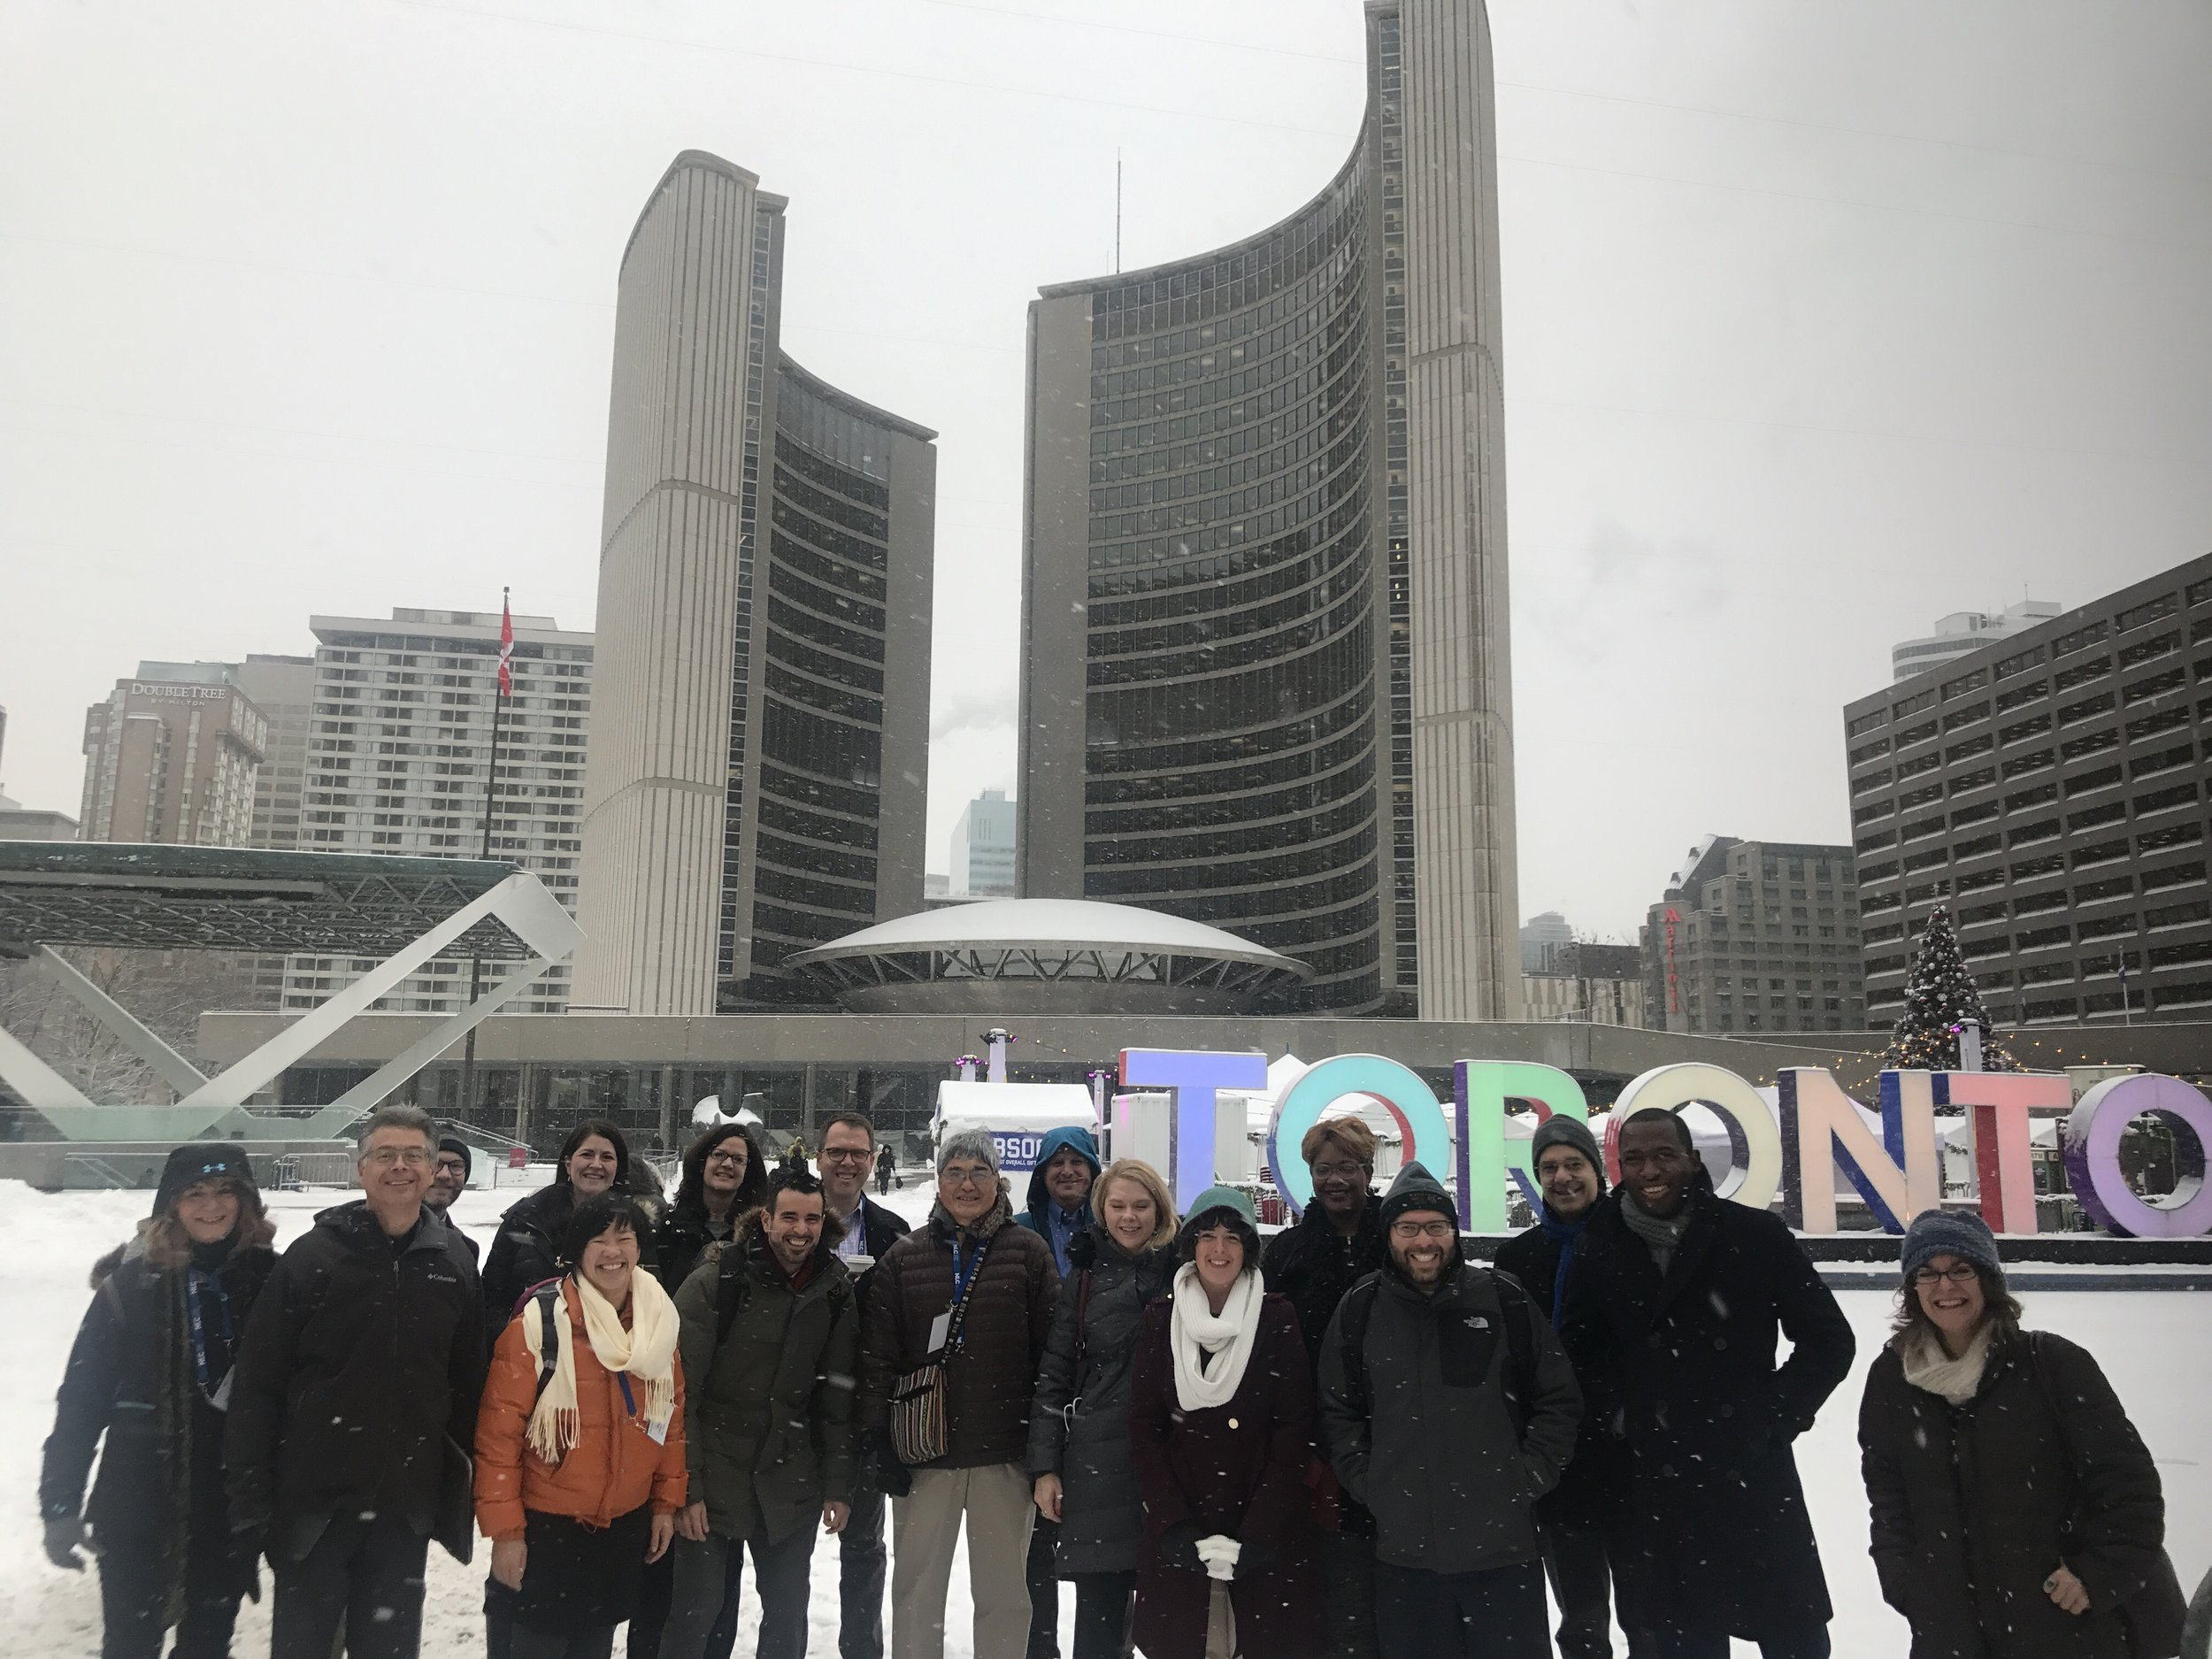 Experiencing many climates and places with the The Rose Center. The Class of 2018 included the Cities of Tucson, AZ, Salt Lake City UT, Columbus OH, and Richmond VA. We also visited Los Angeles, CA, and Detroit MI for the Fall and Spring ULI Meetings. Here fellows and advisors (freezing) on a Tour of Toronto, Ontario.